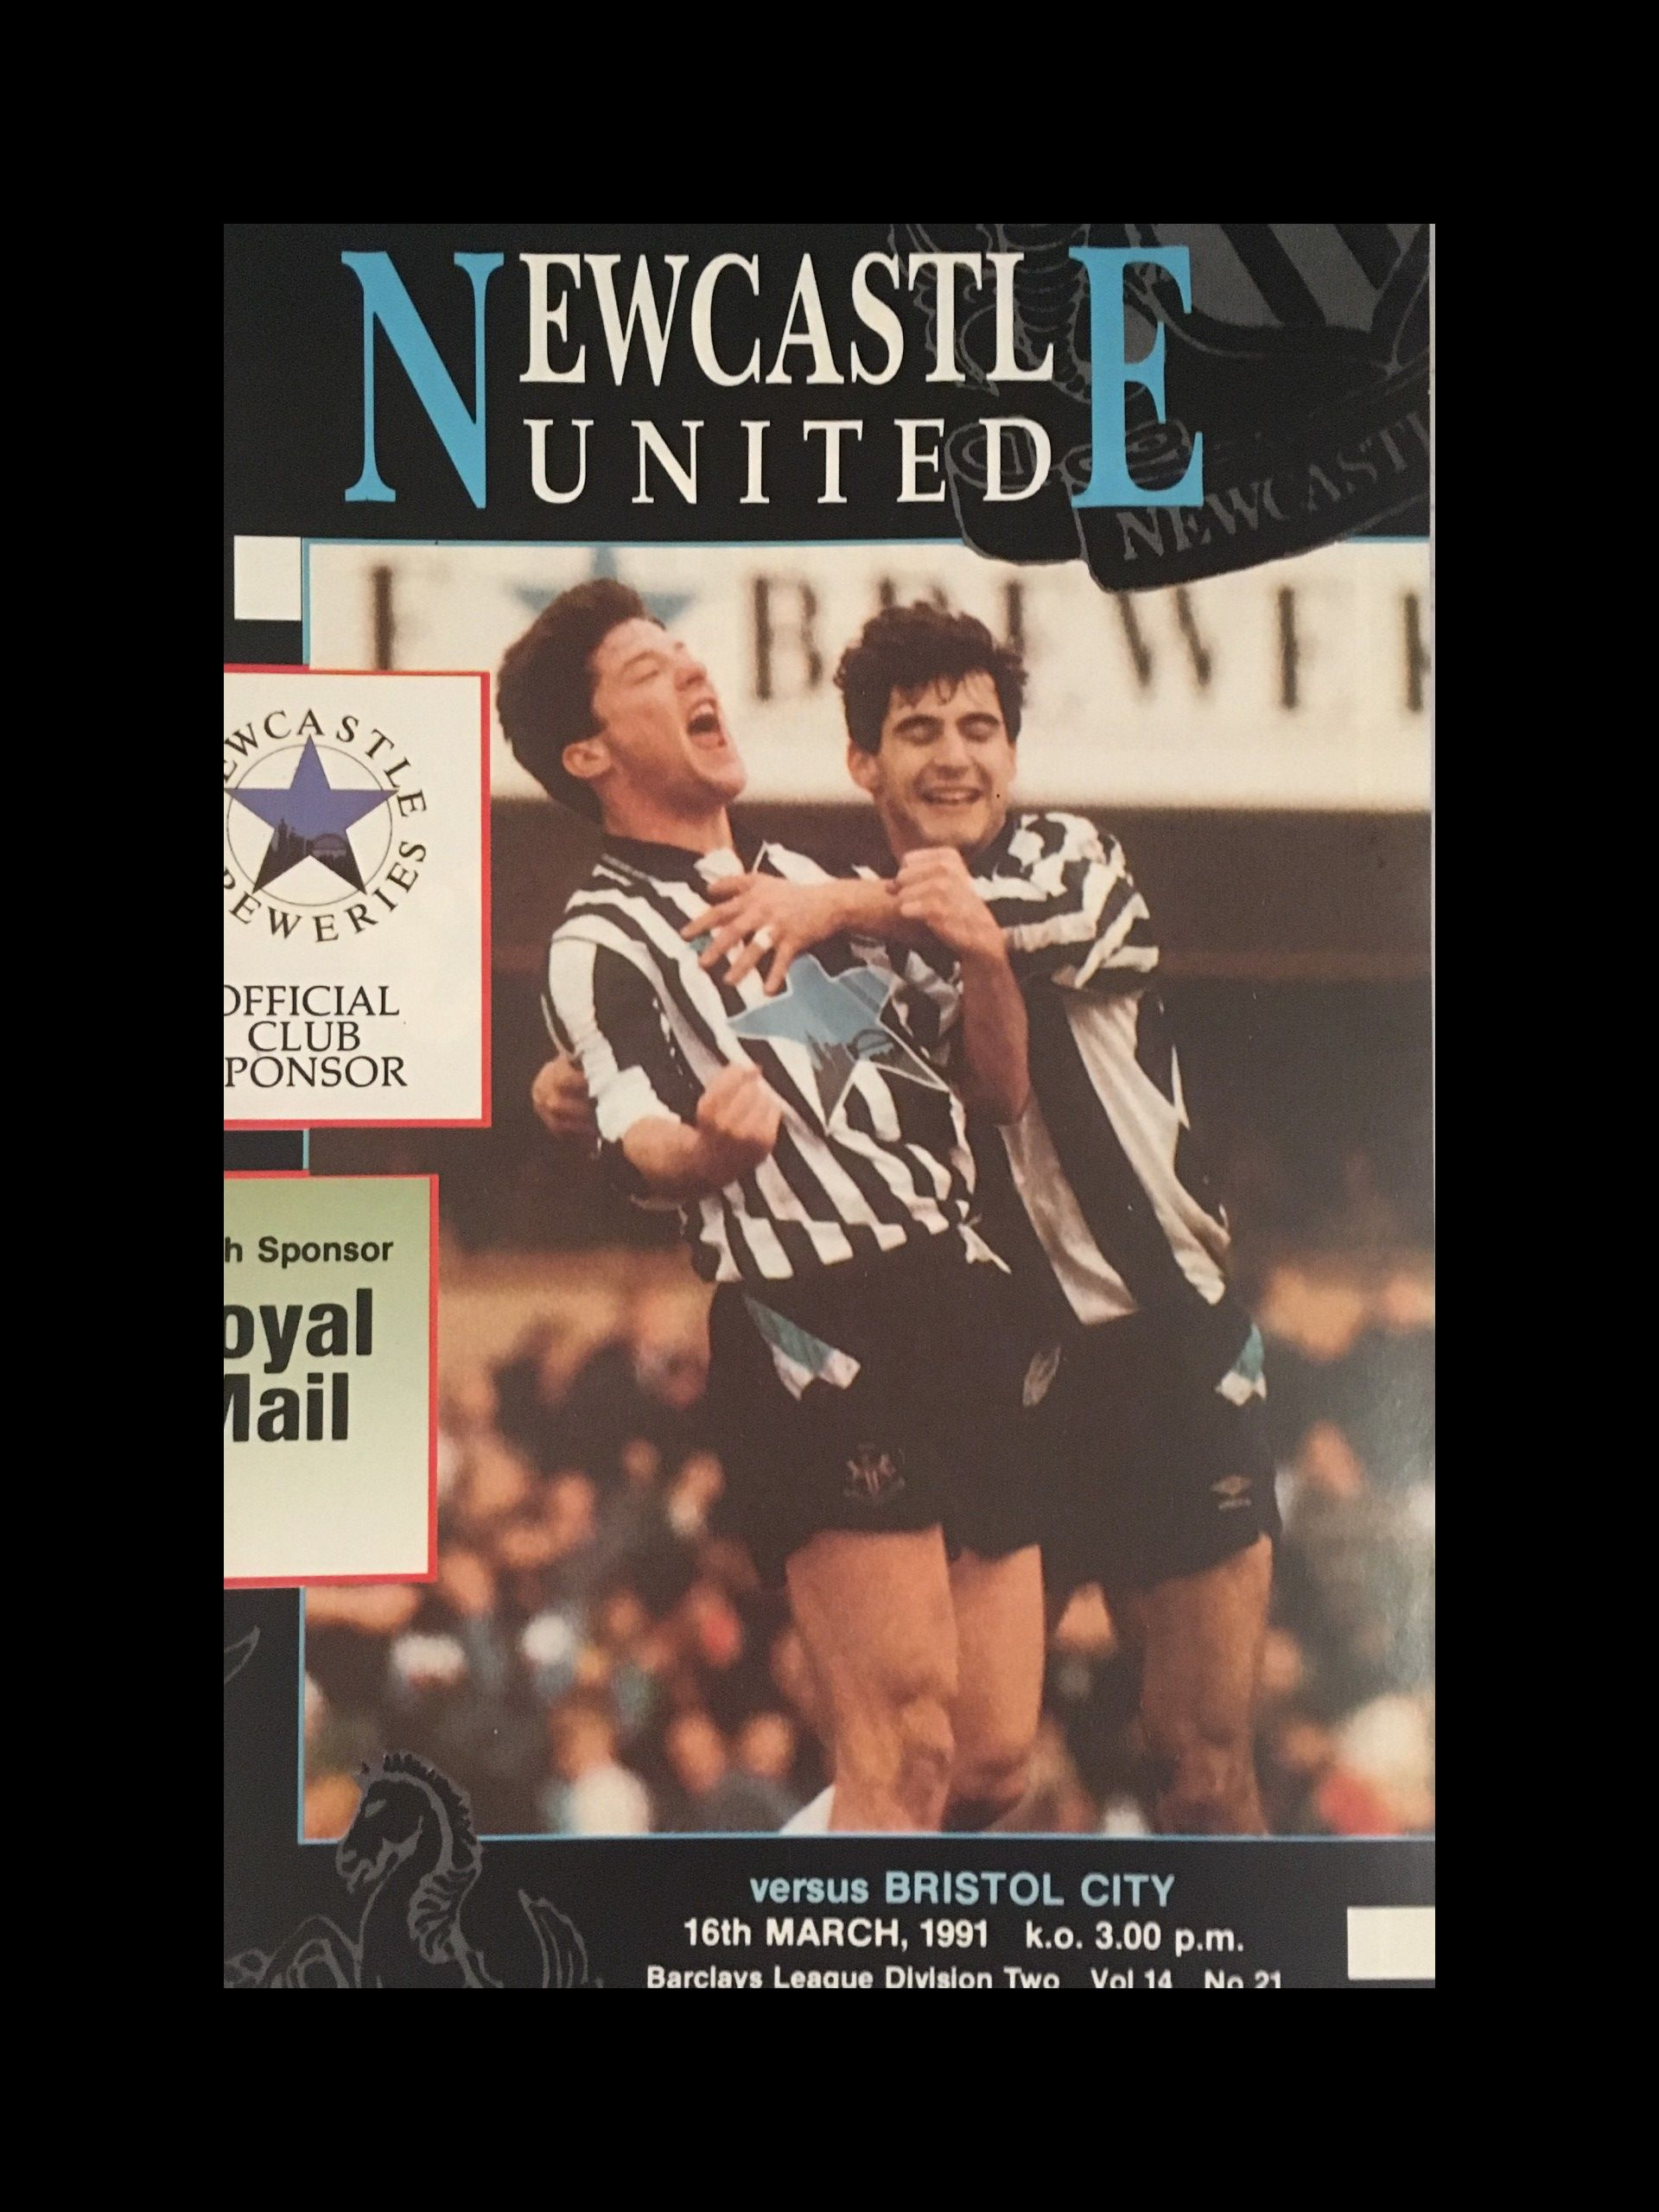 Newcastle United v Bristol City 16-03-1991 Programme